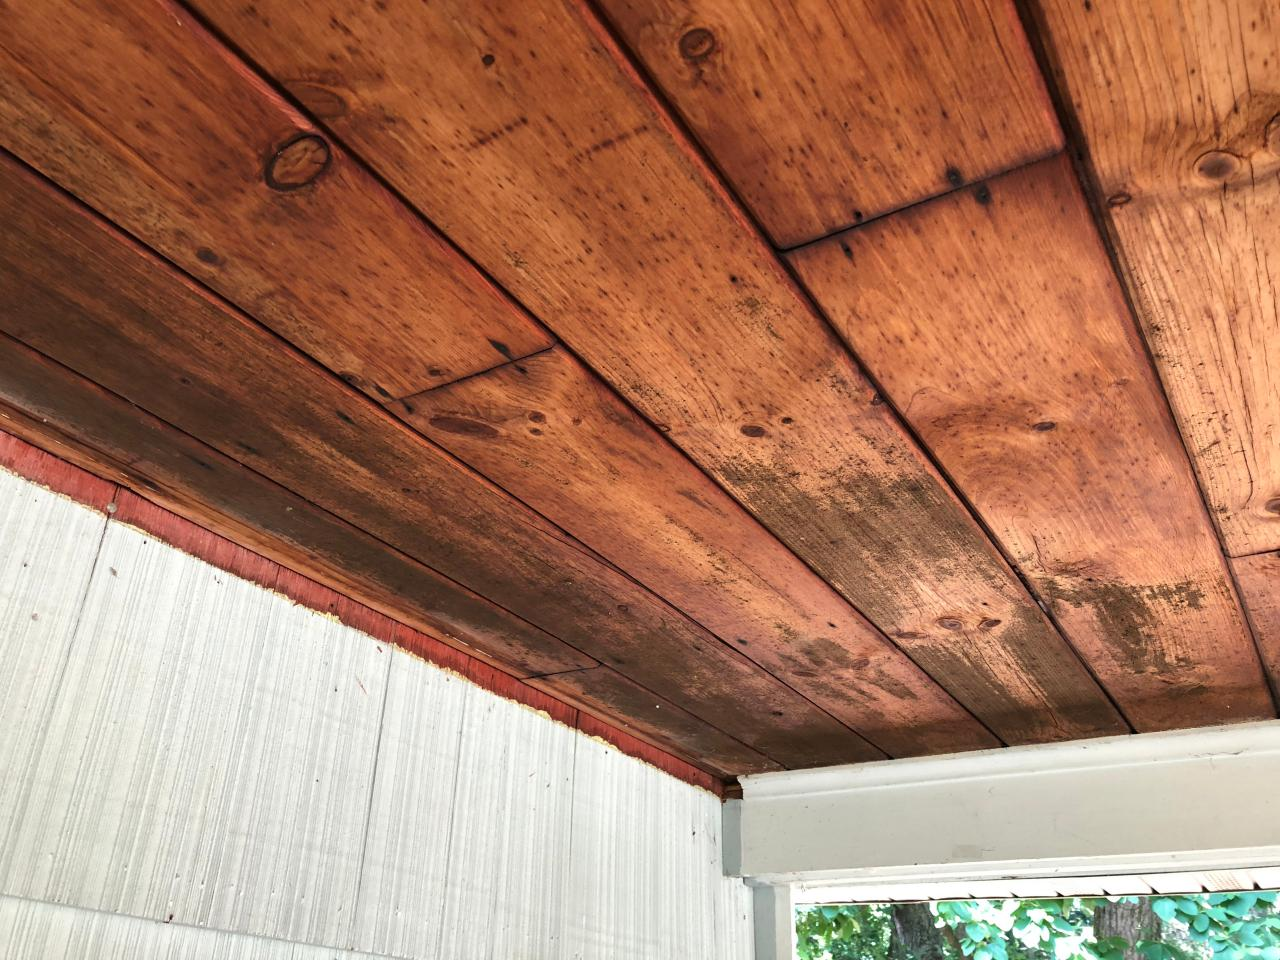 How To Remove Mold From A Wooden Ceiling Hgtv